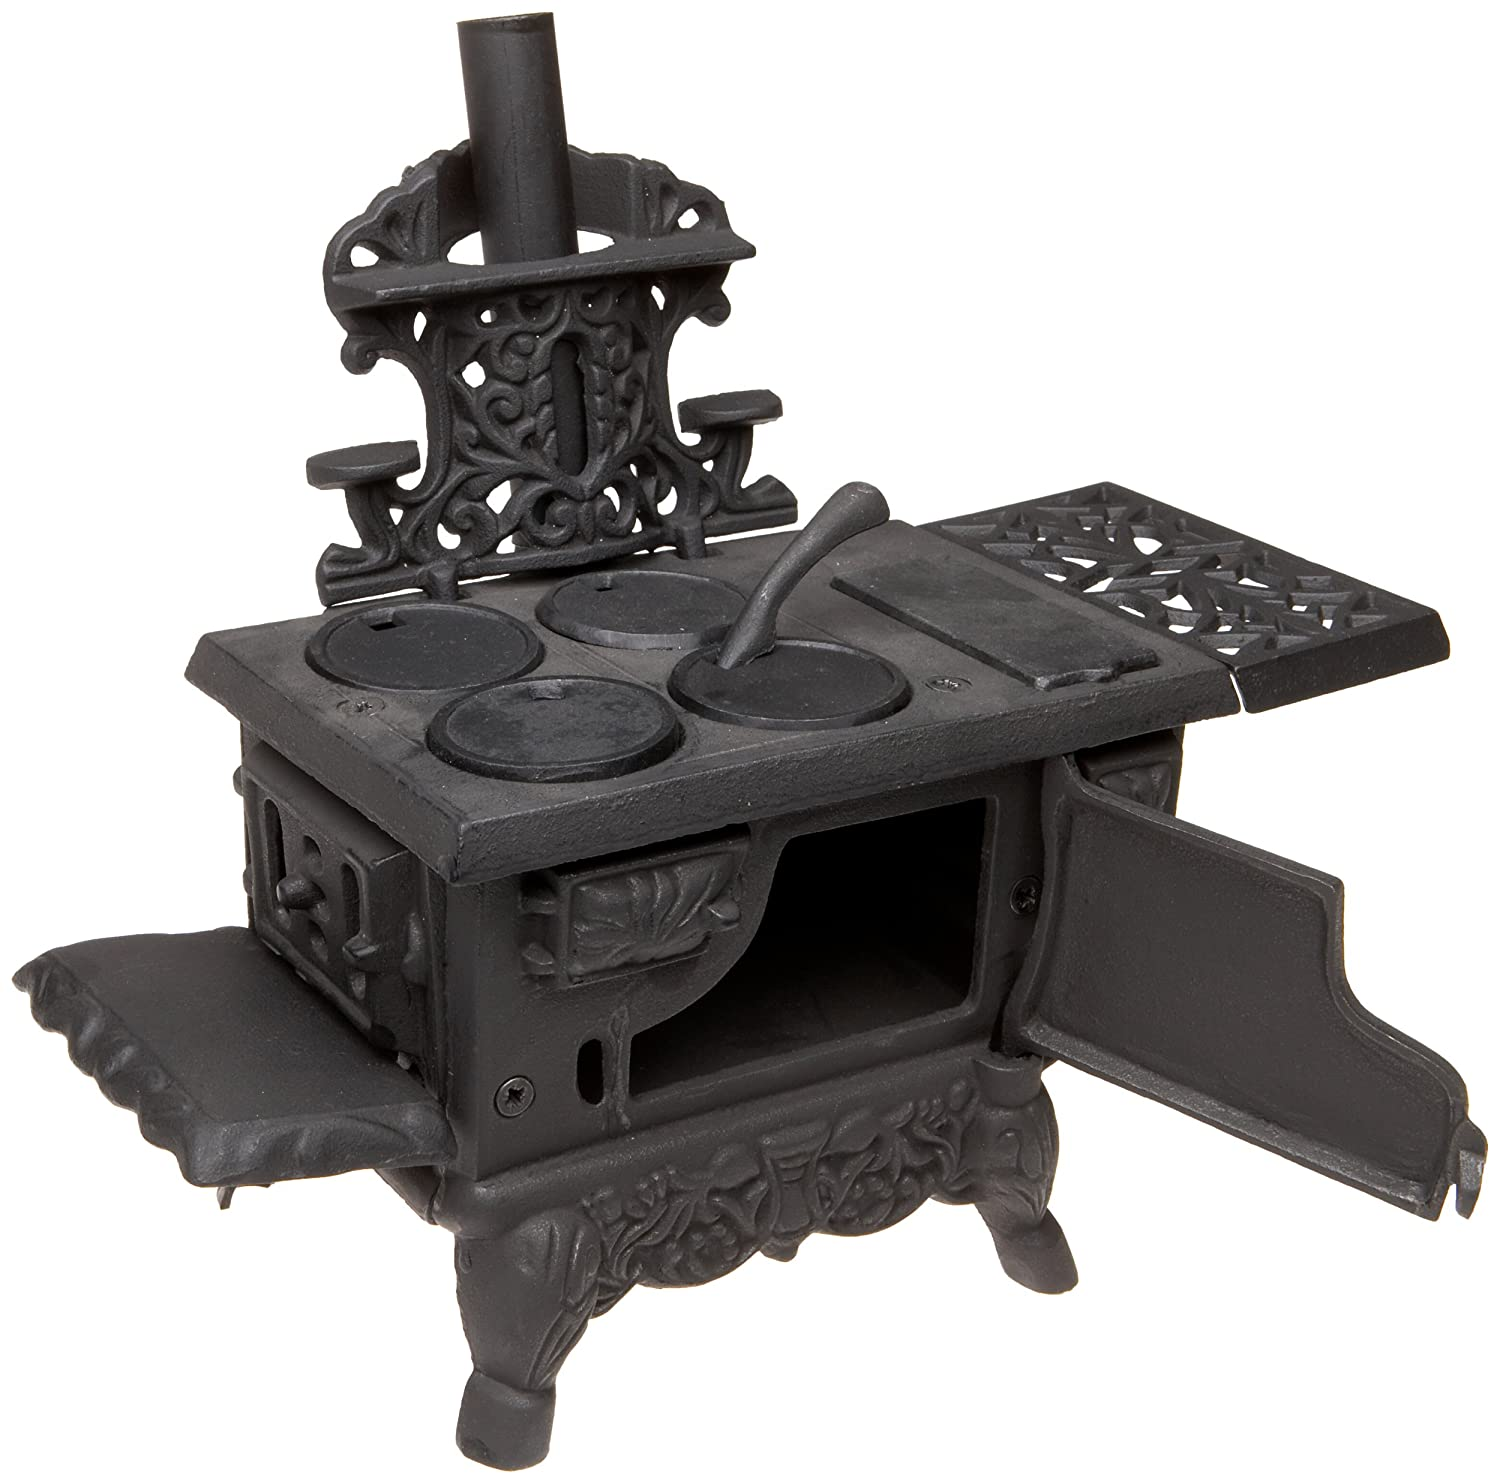 12 Inches Long With Accessories Old Mountain 10126 Black Mini Wood Cook Stove Set